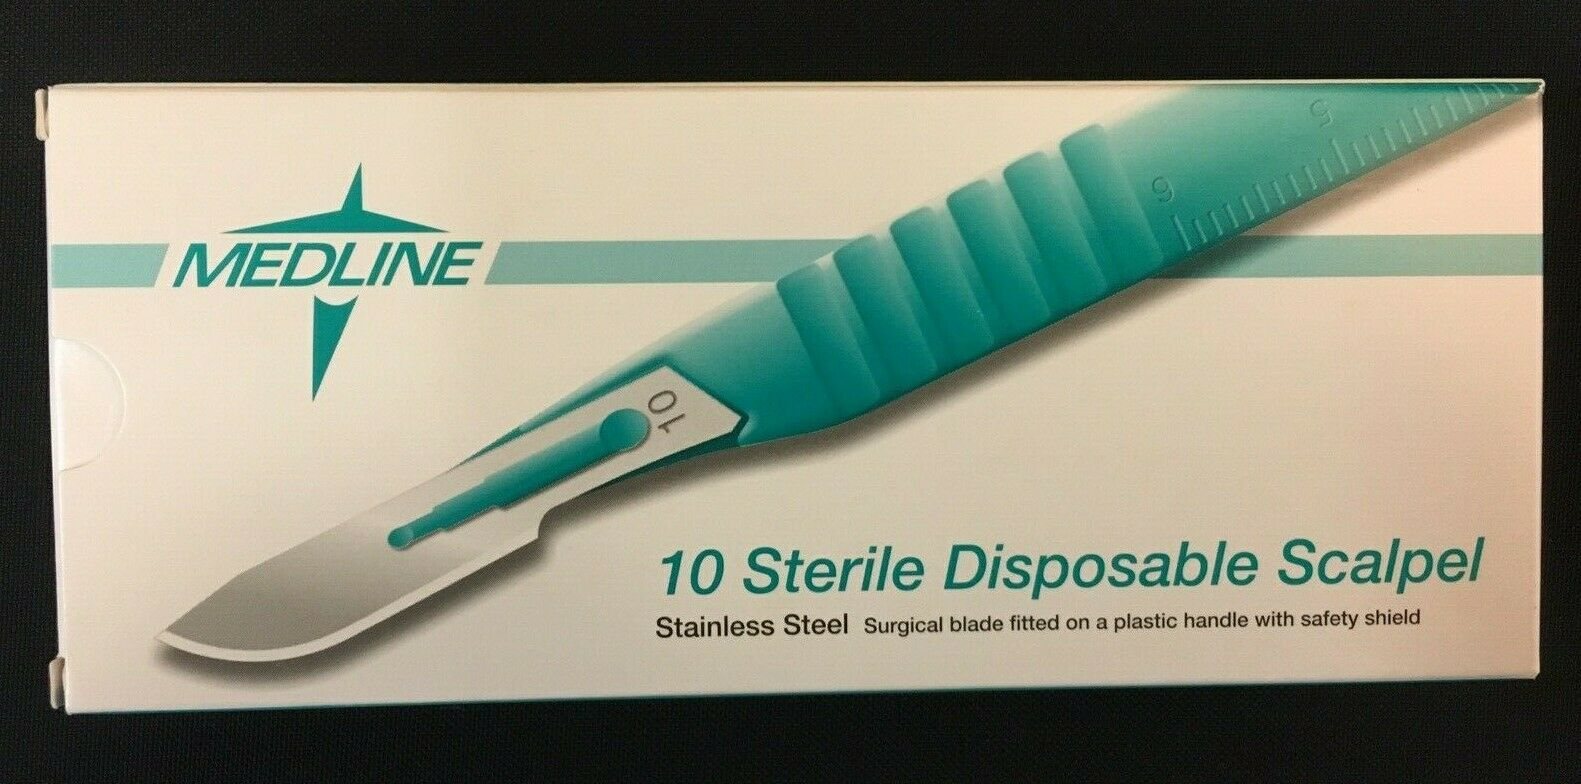 Medical Use Crafting and Miniature Handy Work Designing Signs 10 Pack of Disposable Scalpels #13 for Cardmaking